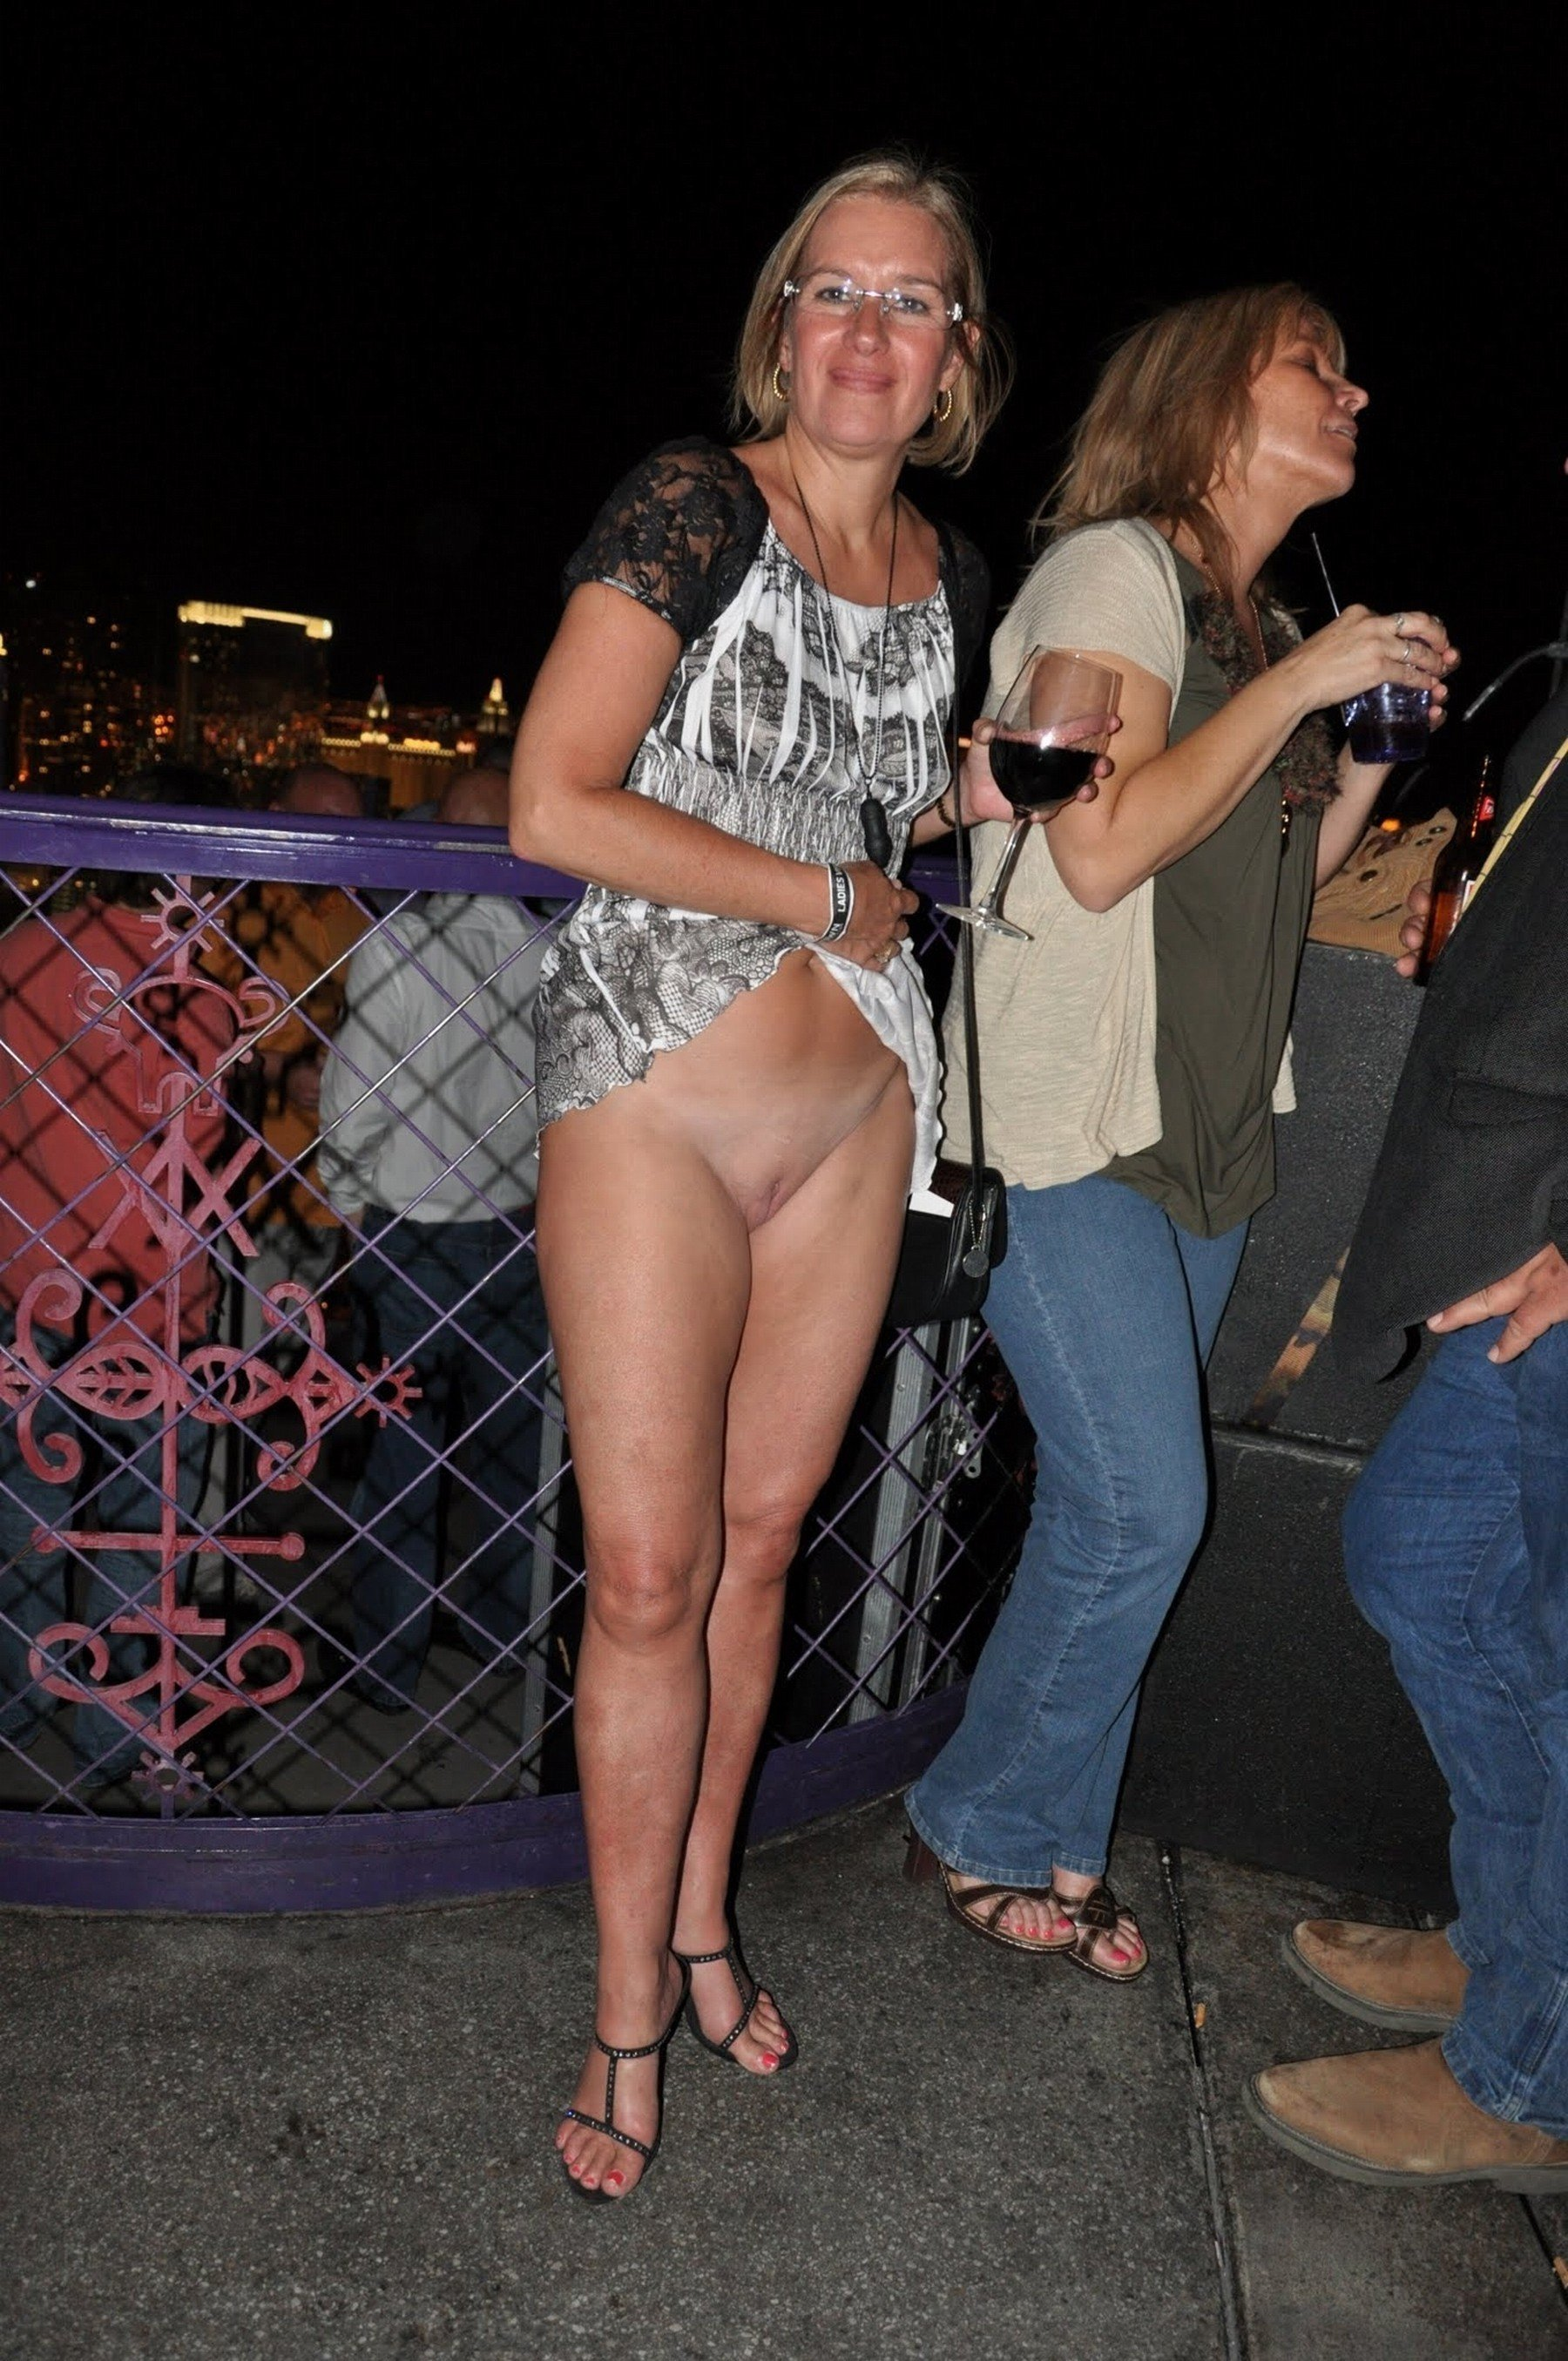 extreme-cumshots-oops-naked-public-blonde-nude